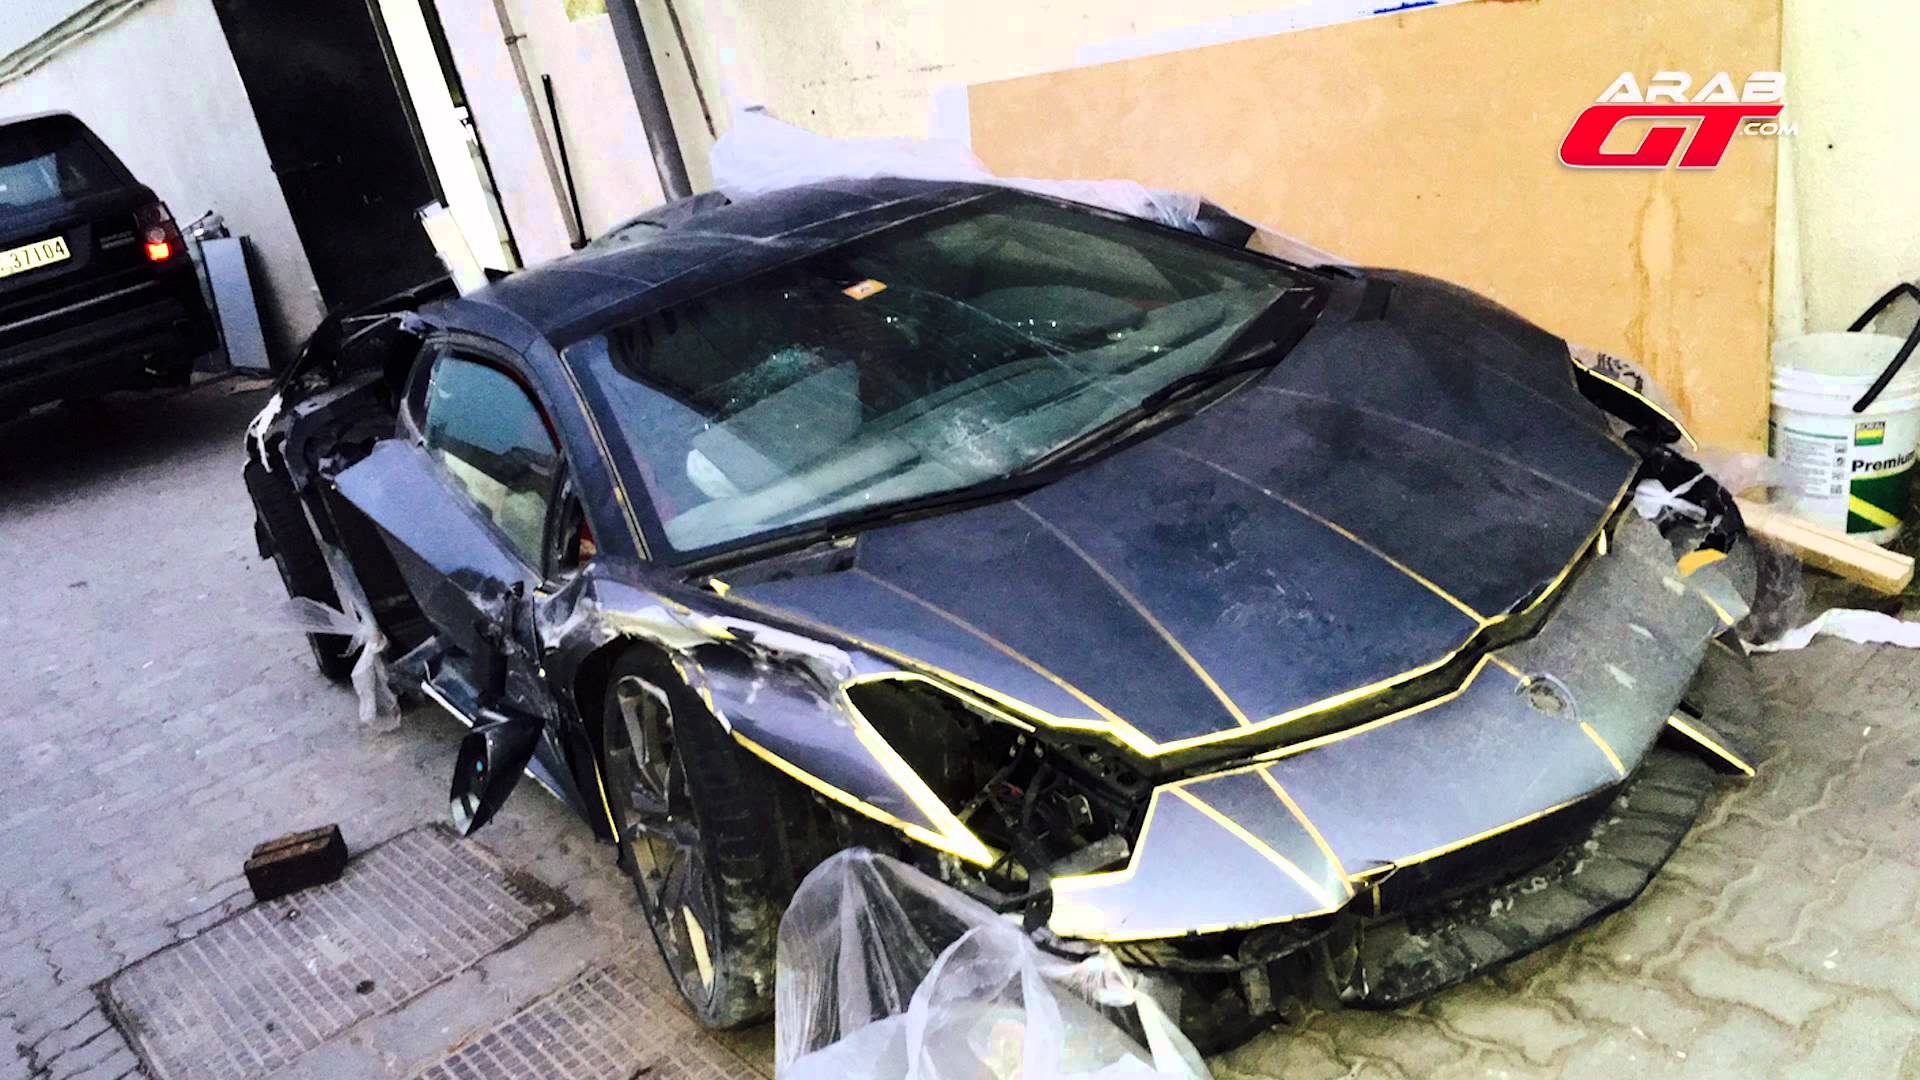 Wrecked Cars For Sale >> Wrecked Lamborghini Aventador Auctioned for $100K in Dubai ...